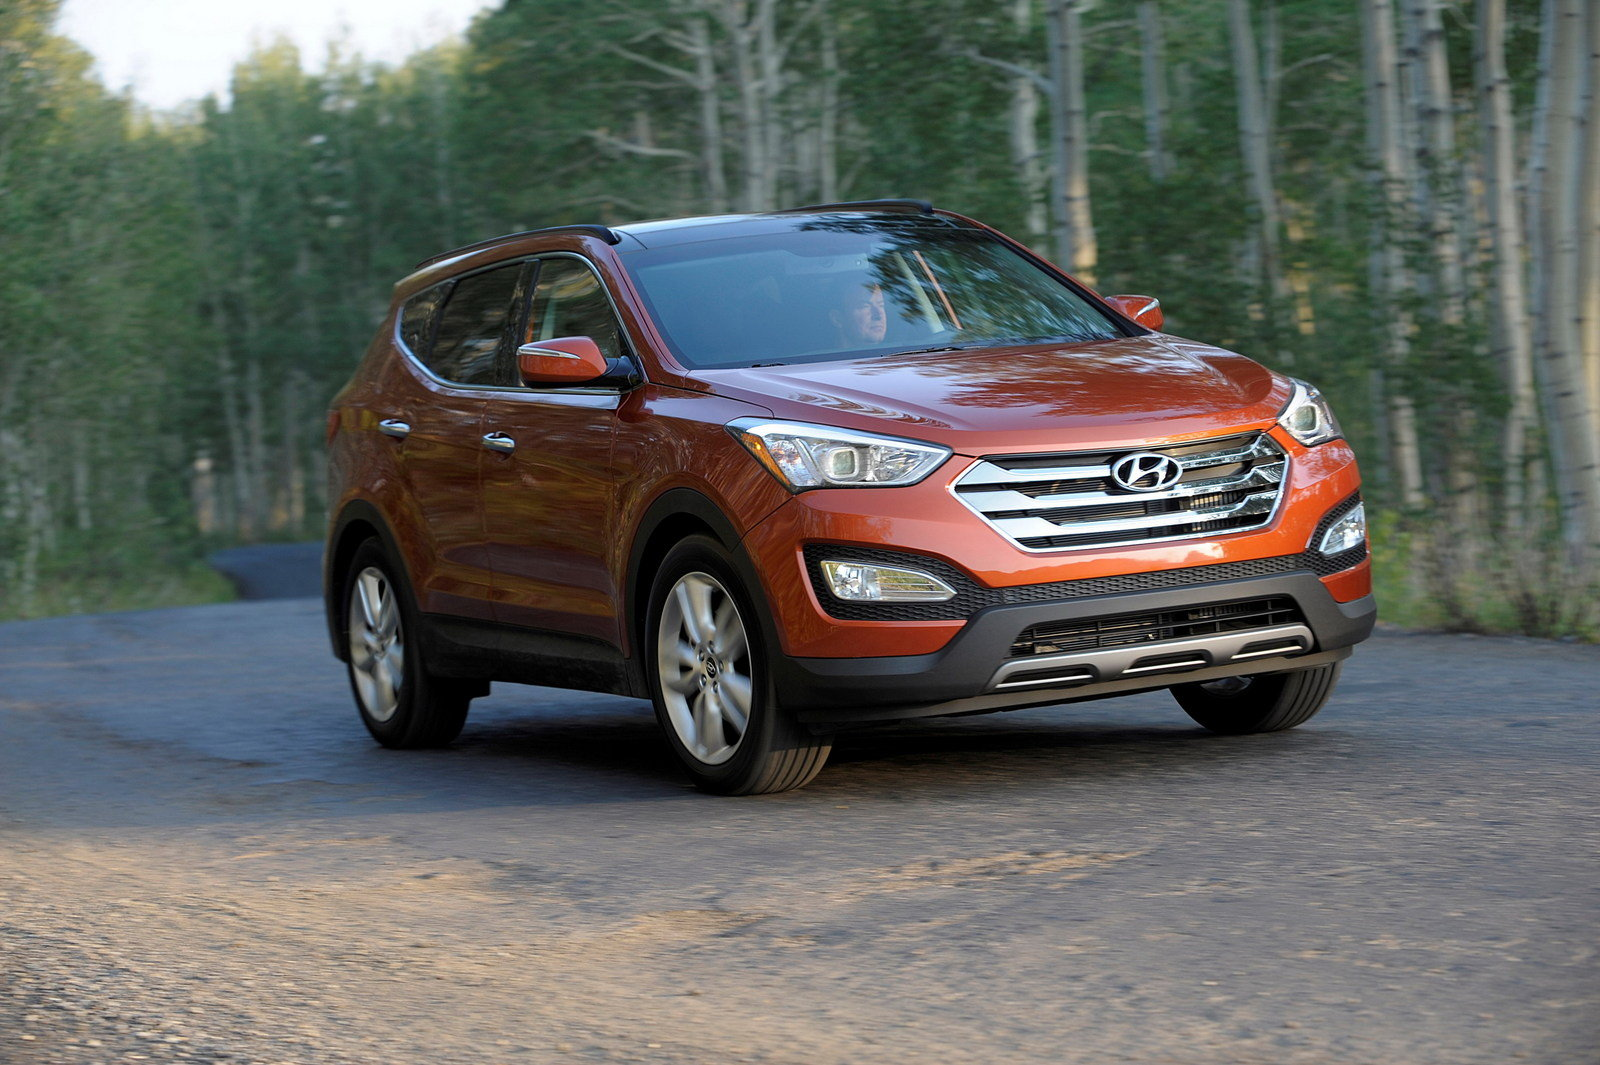 2014 hyundai santa fe sport review top speed. Black Bedroom Furniture Sets. Home Design Ideas